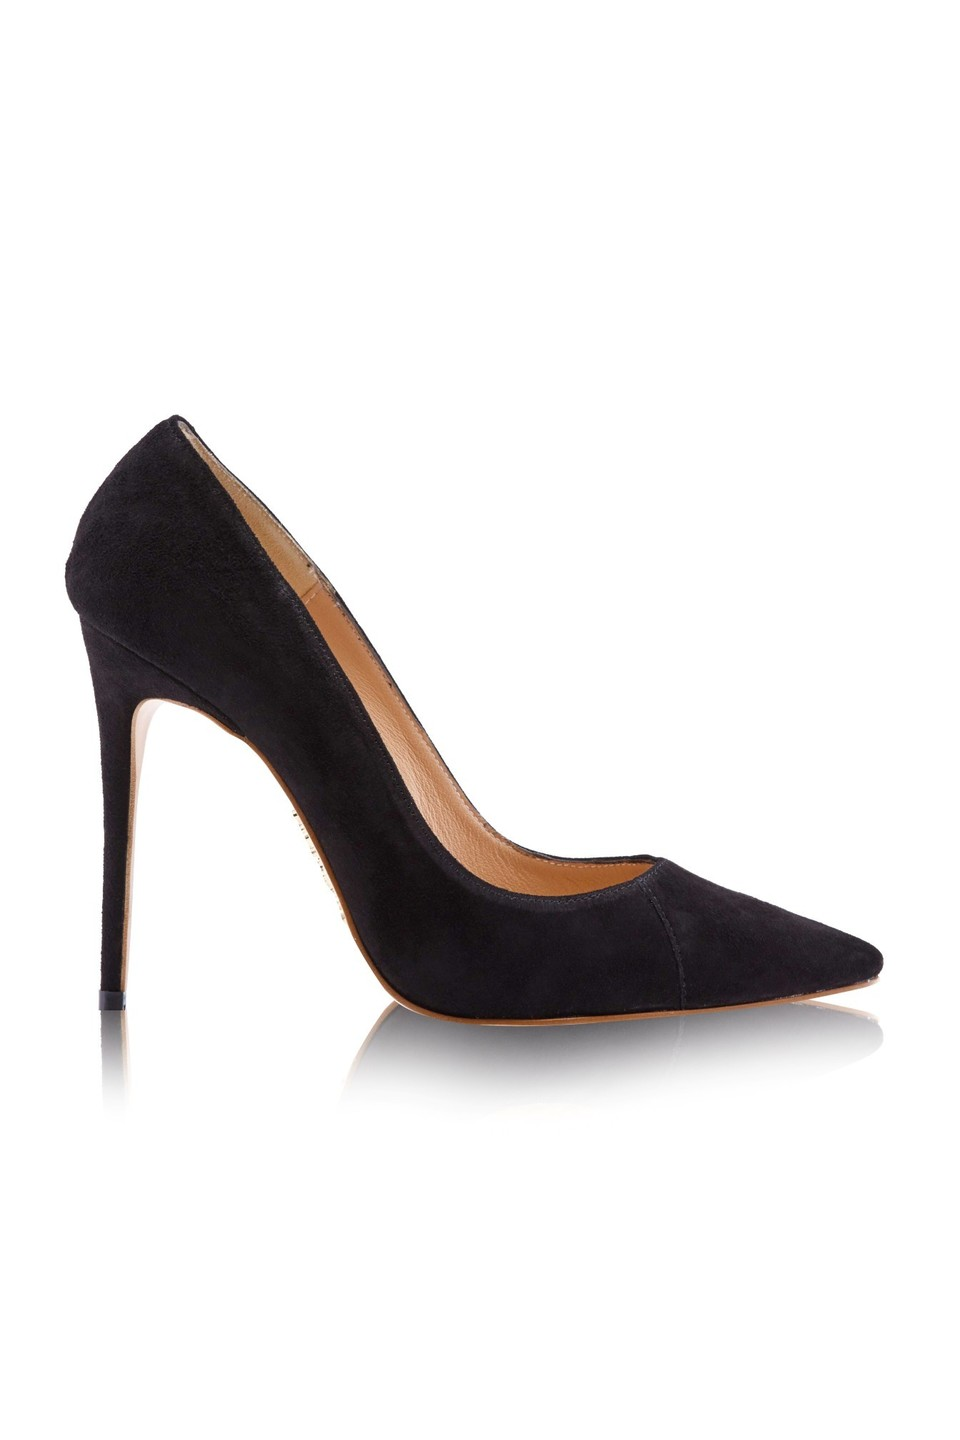 'PARIS' Suede Black Patent Leather Pointy Toe Heels 4""